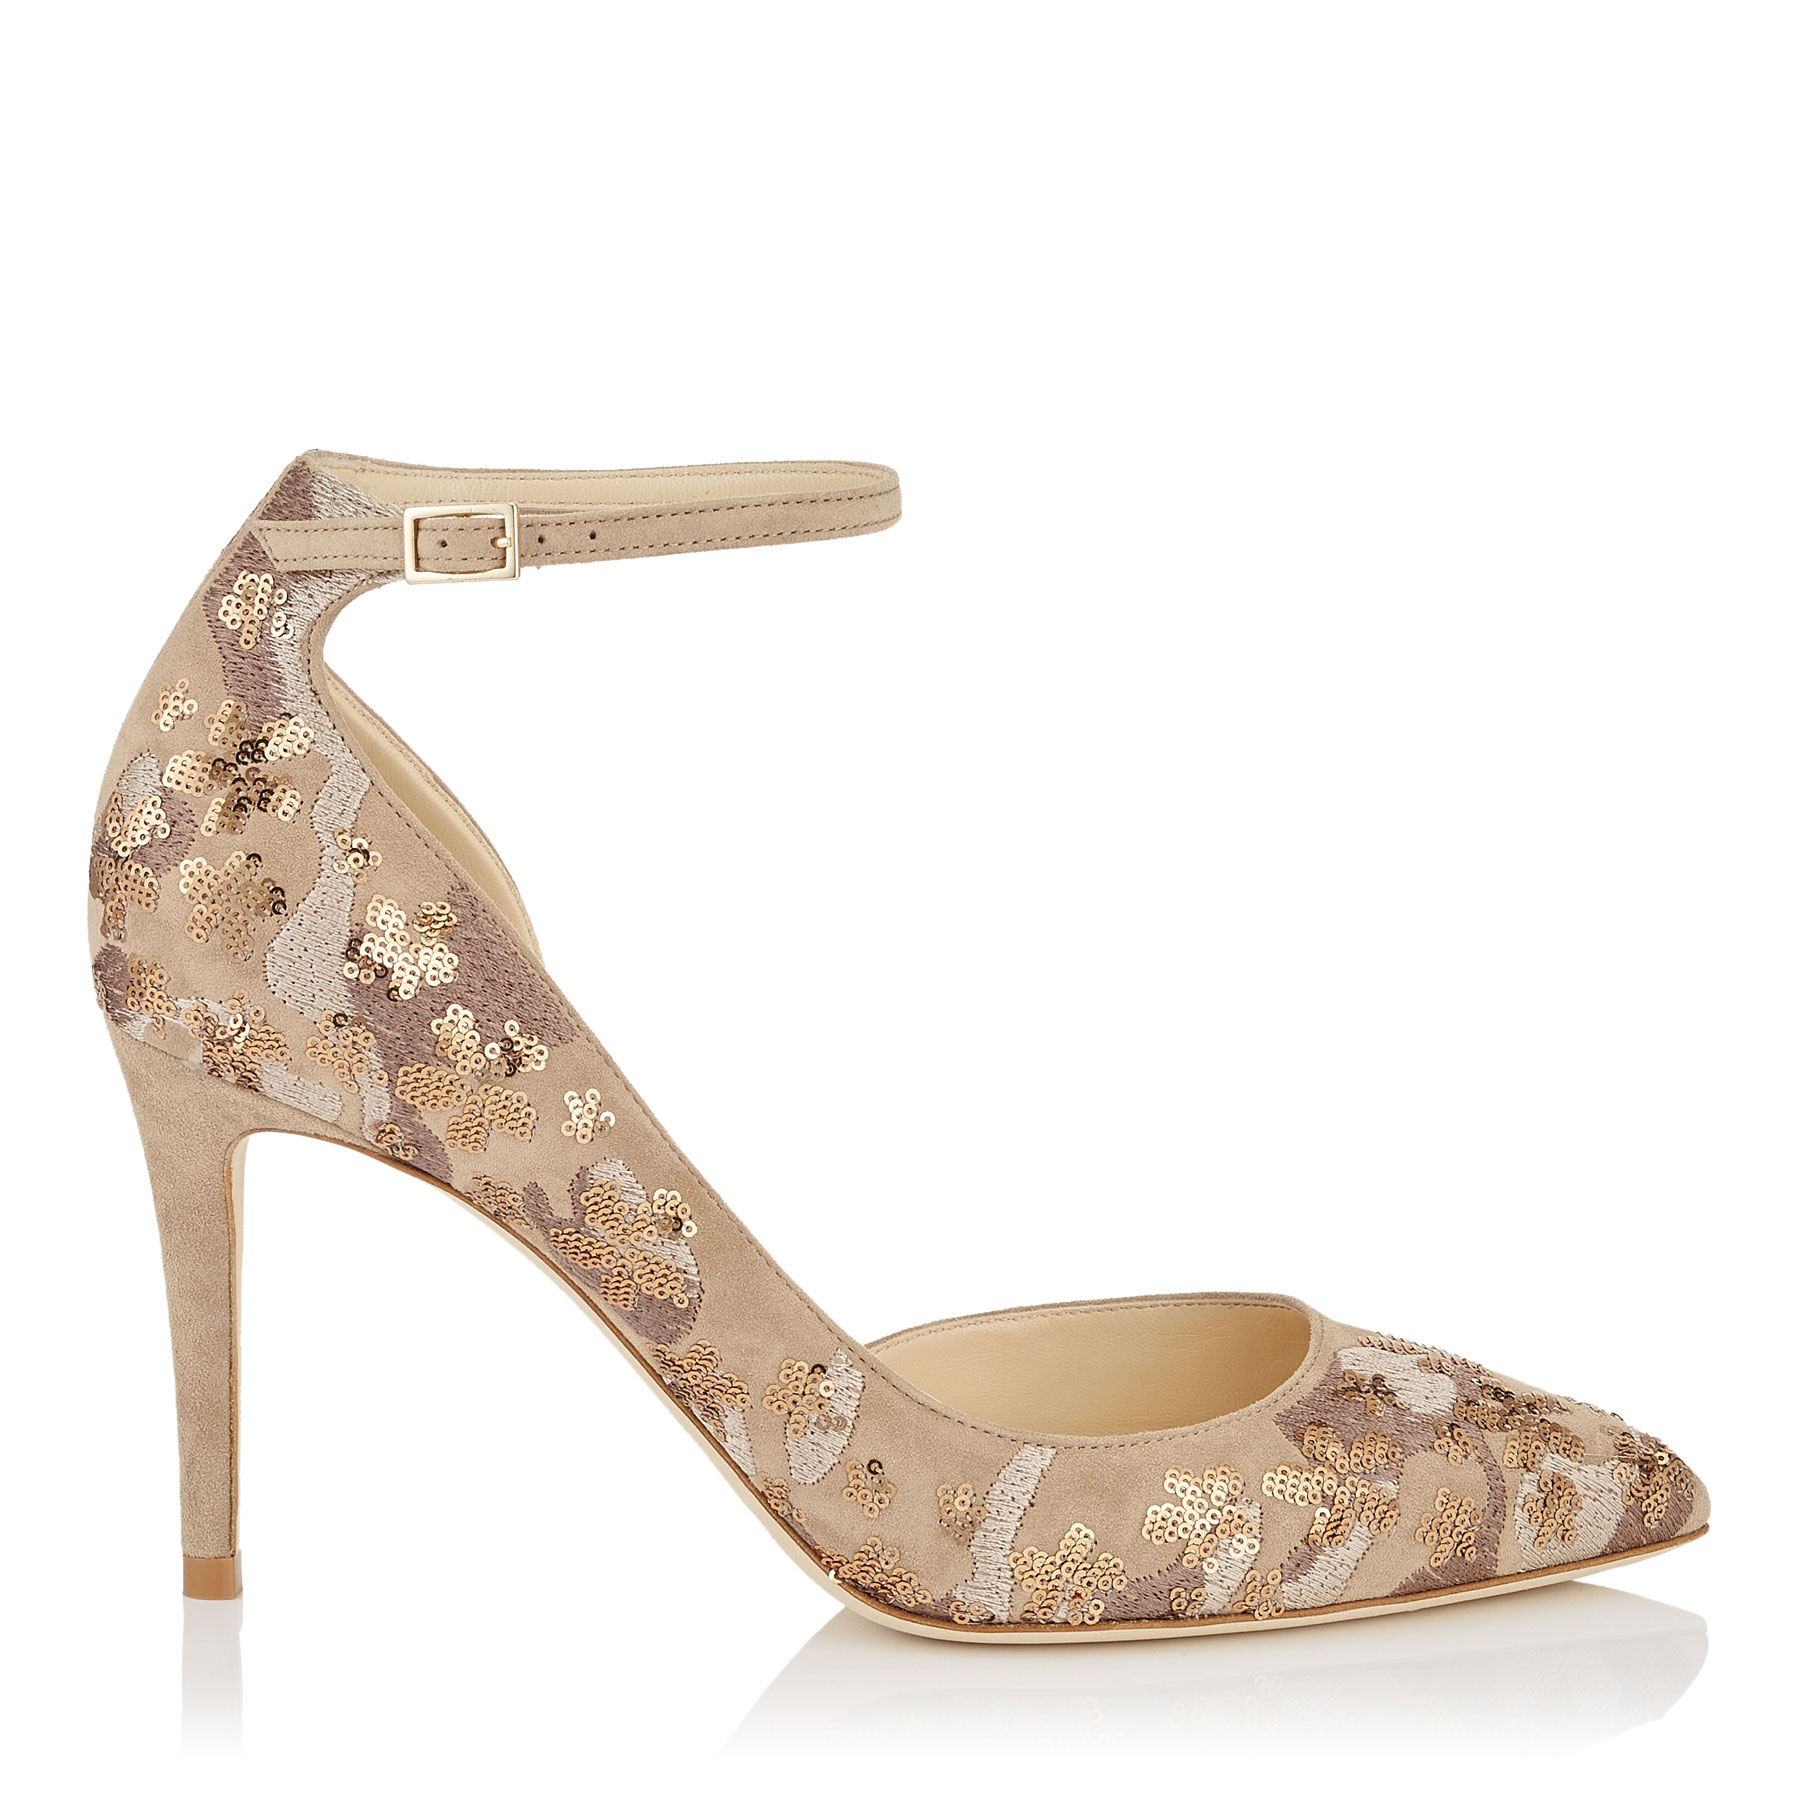 LUCY 85 Nude Floral Embroidery on Suede Pointy Toe Pumps